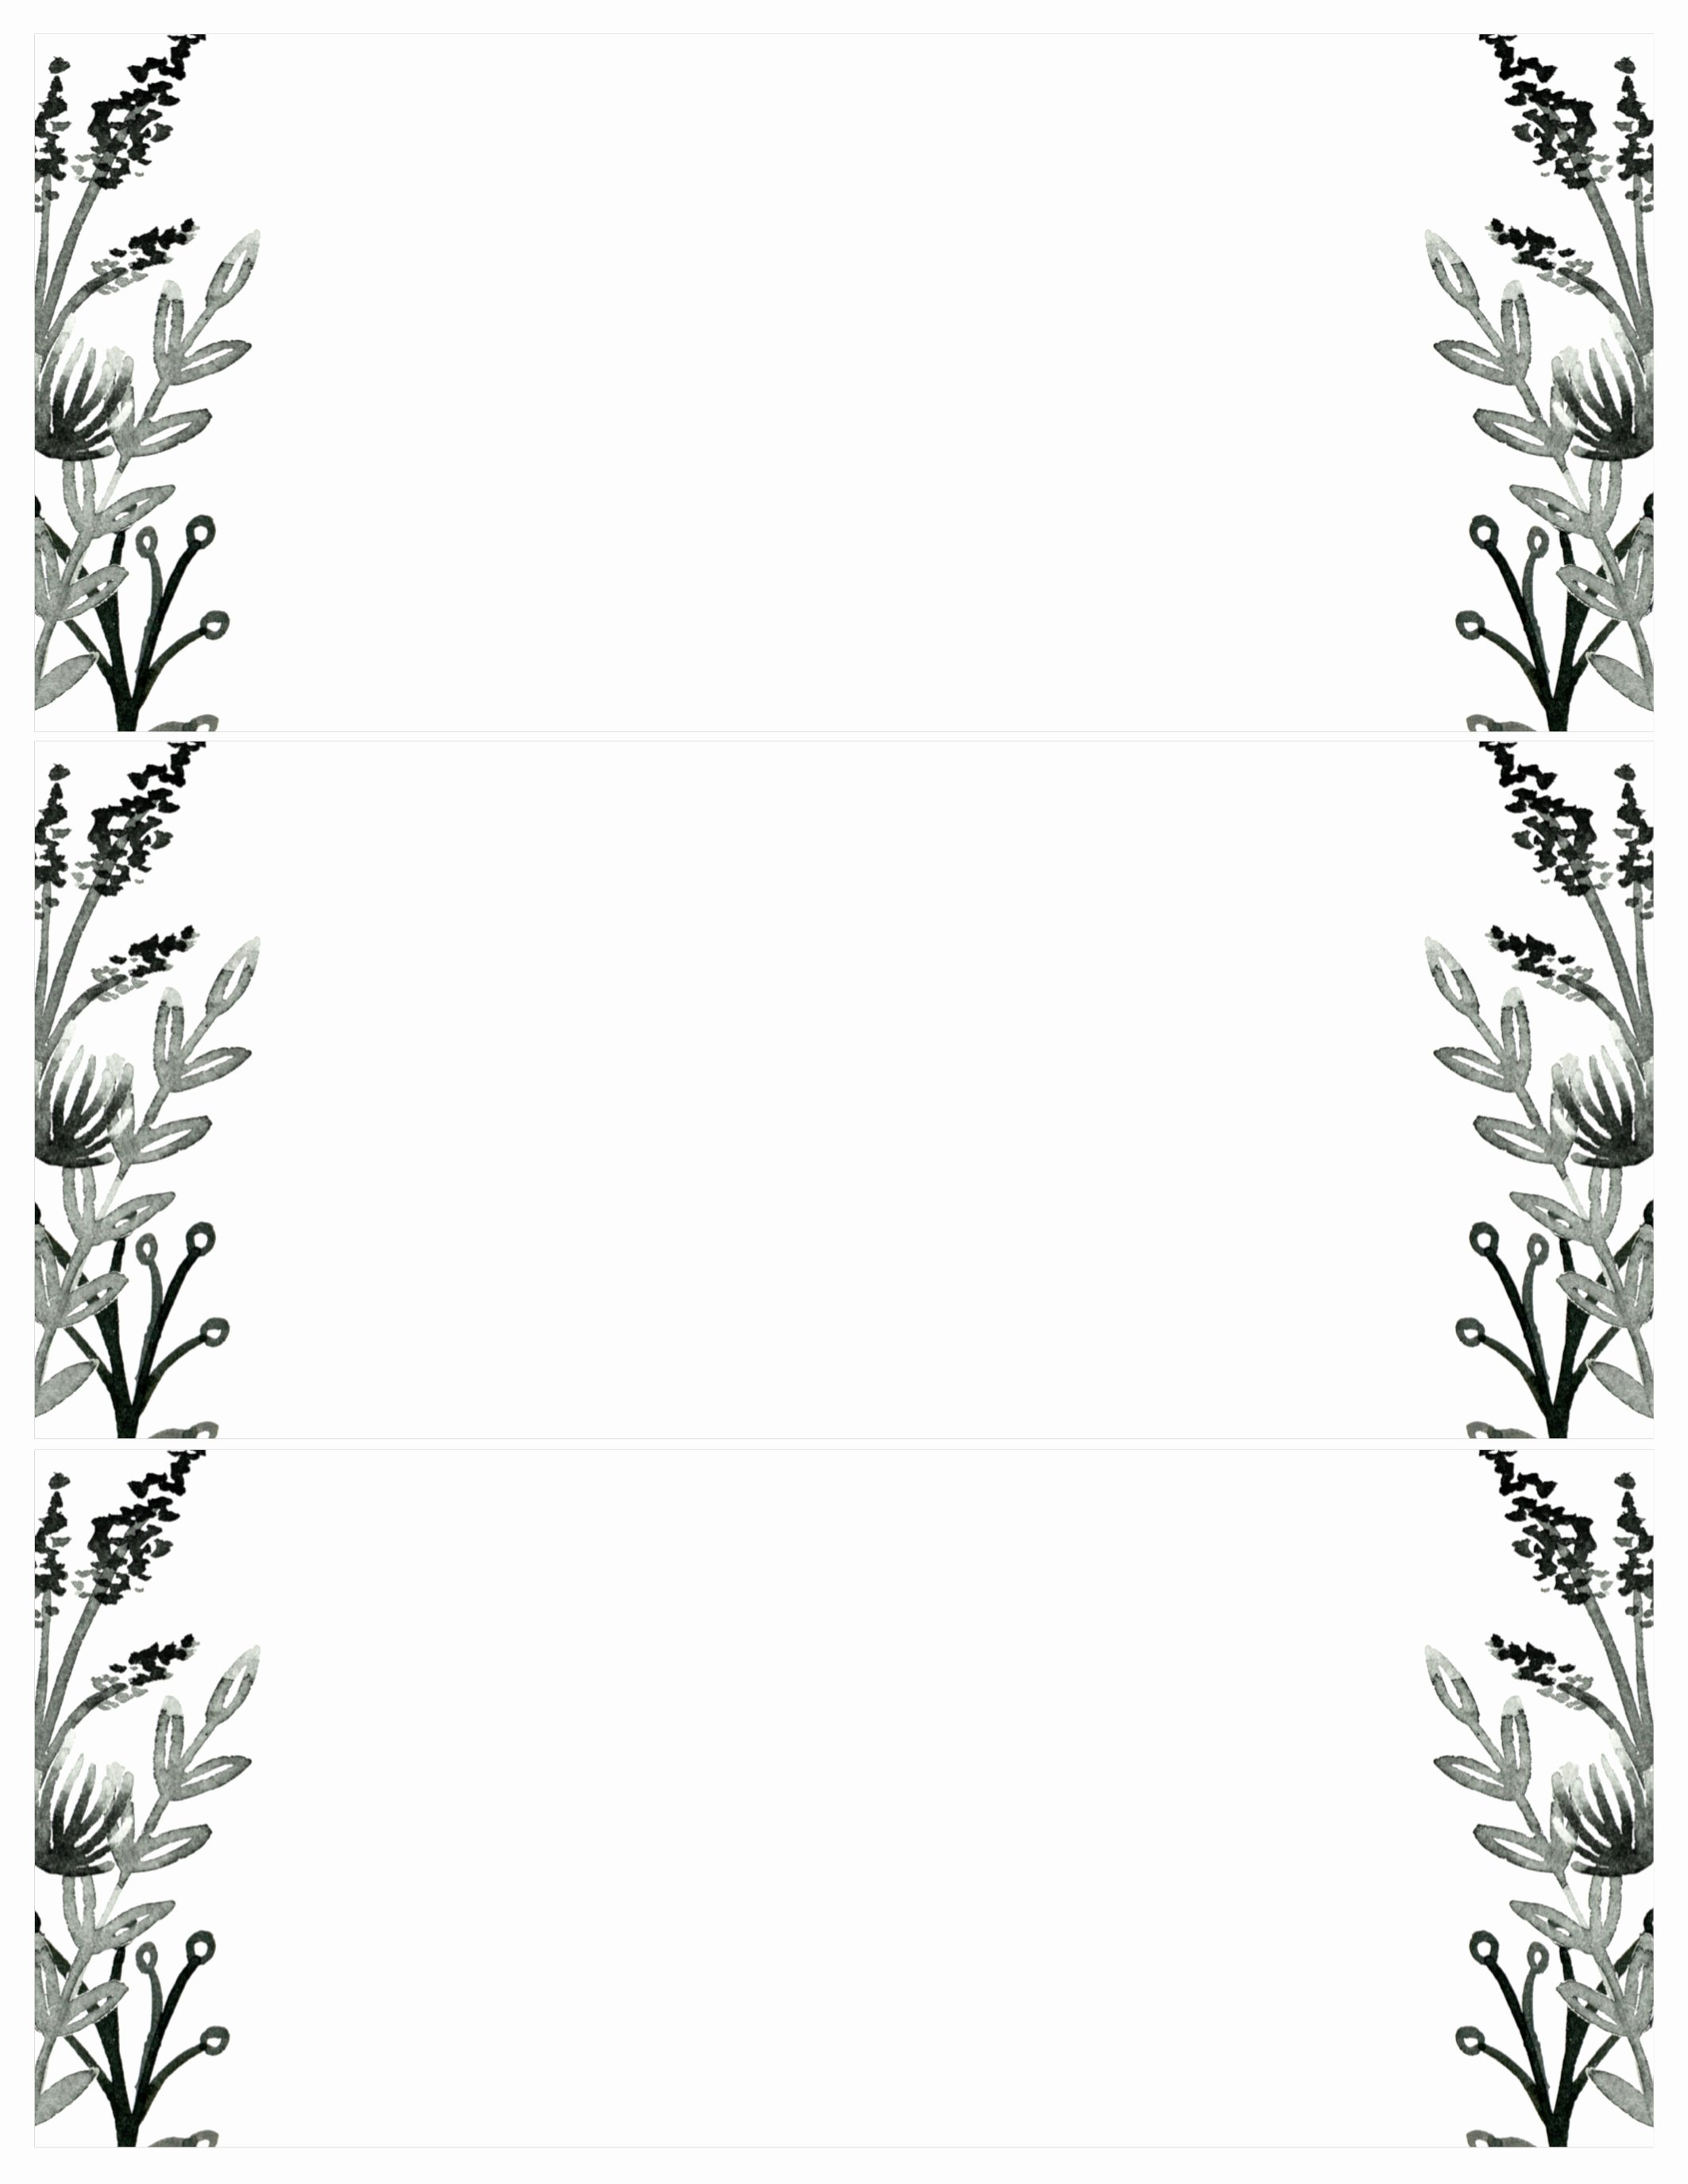 Black White Flowers Invitations Templates Free Printable Paper Trail Design